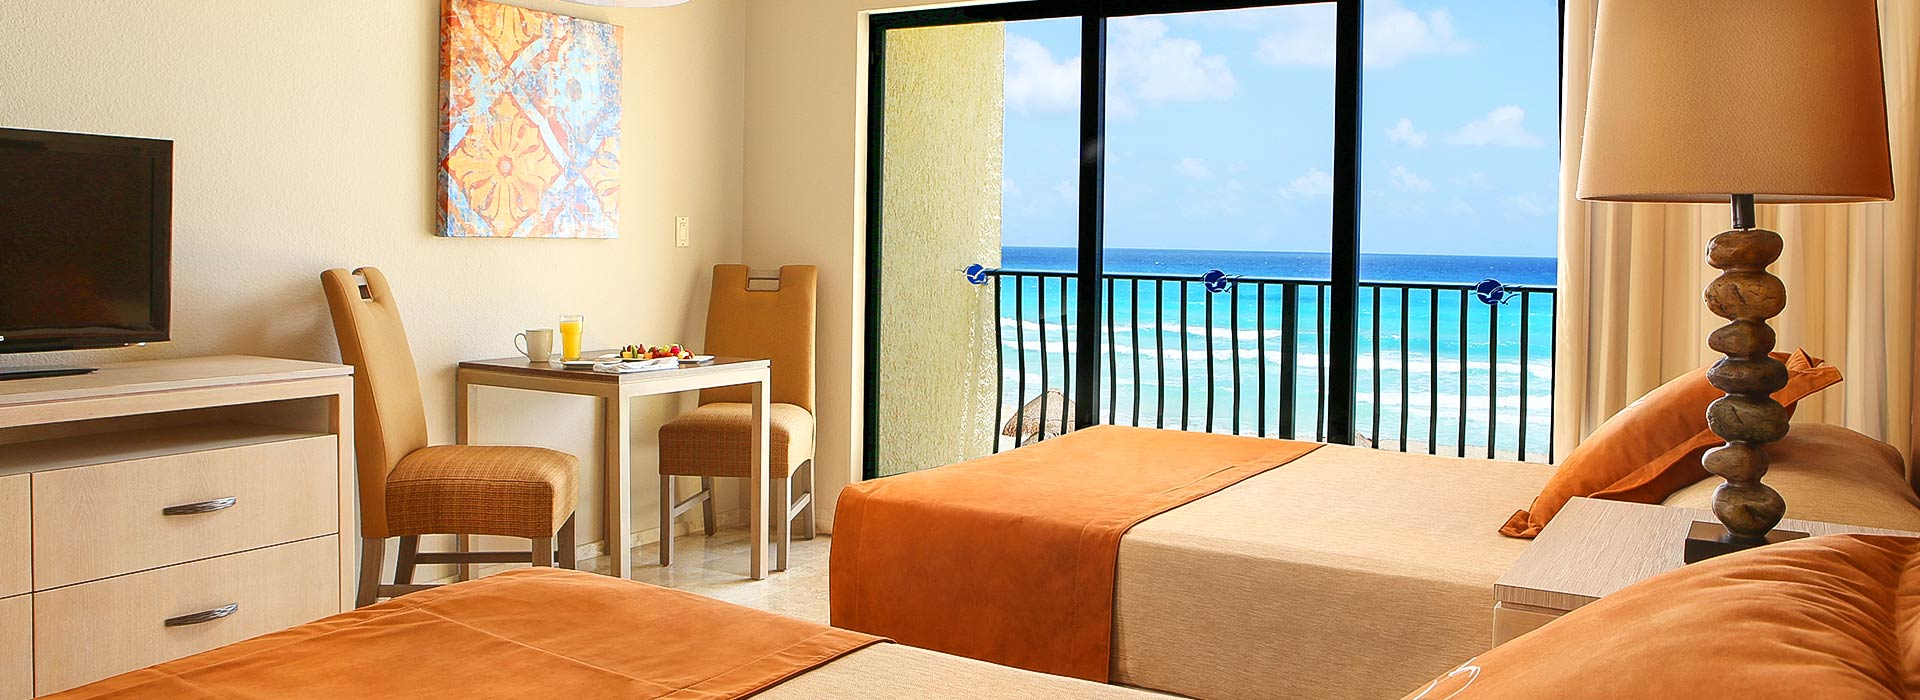 Two Bedroom Suite With Ocean View